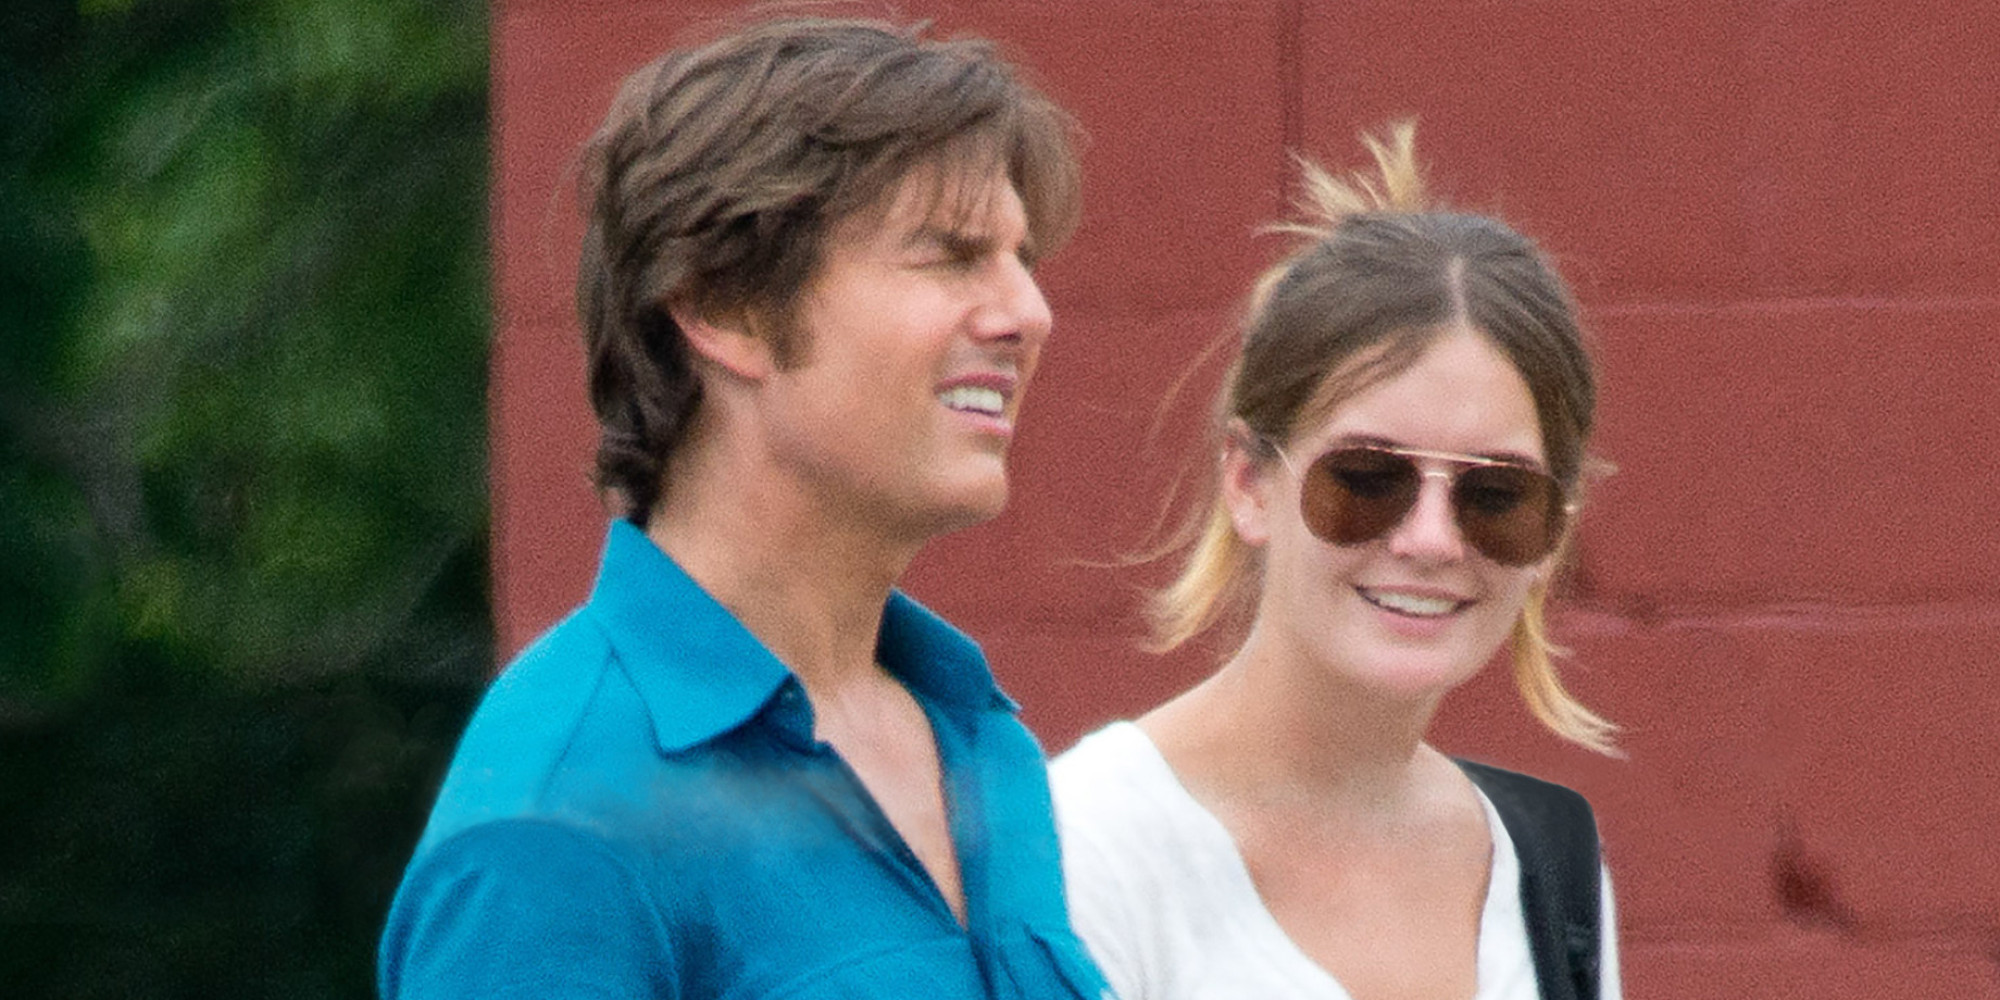 Tom cruise dating Who is Tom Cruise's new 'girlfriend'? 5 things to know about Vanessa Kirby -